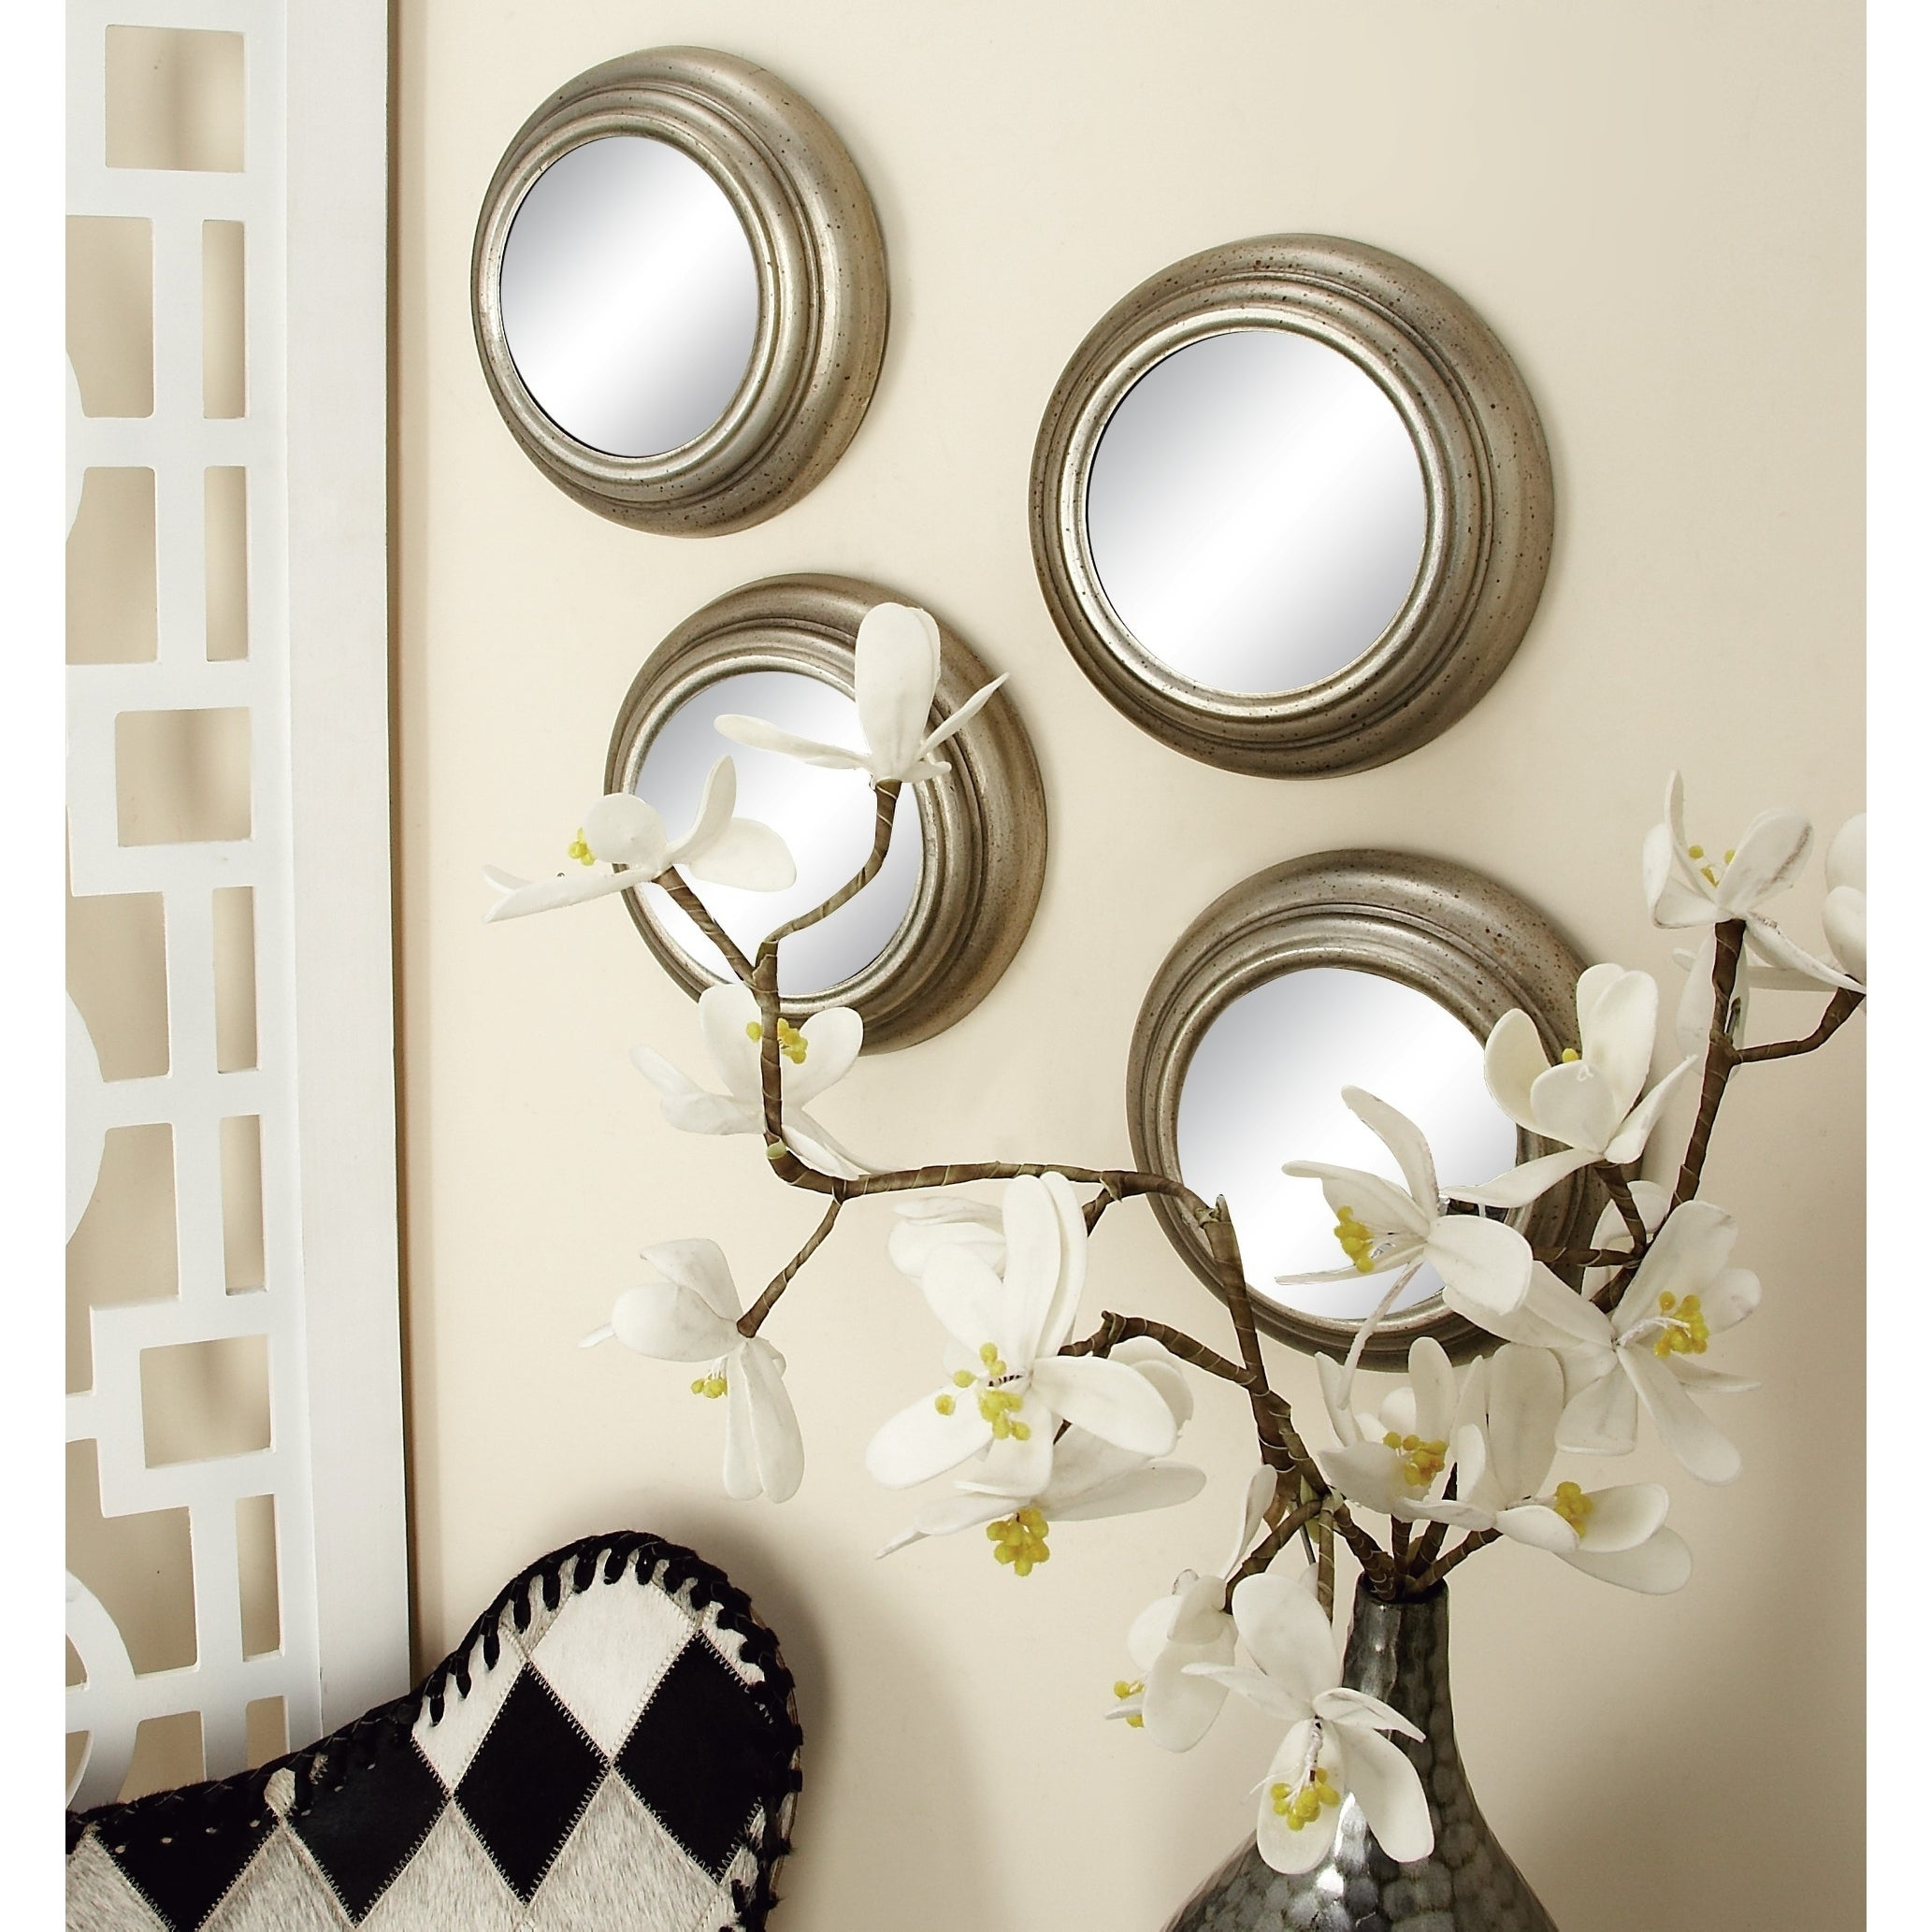 Set Of 12 Contemporary Round Decorative Wall Mirrors By Studio 350 Silver